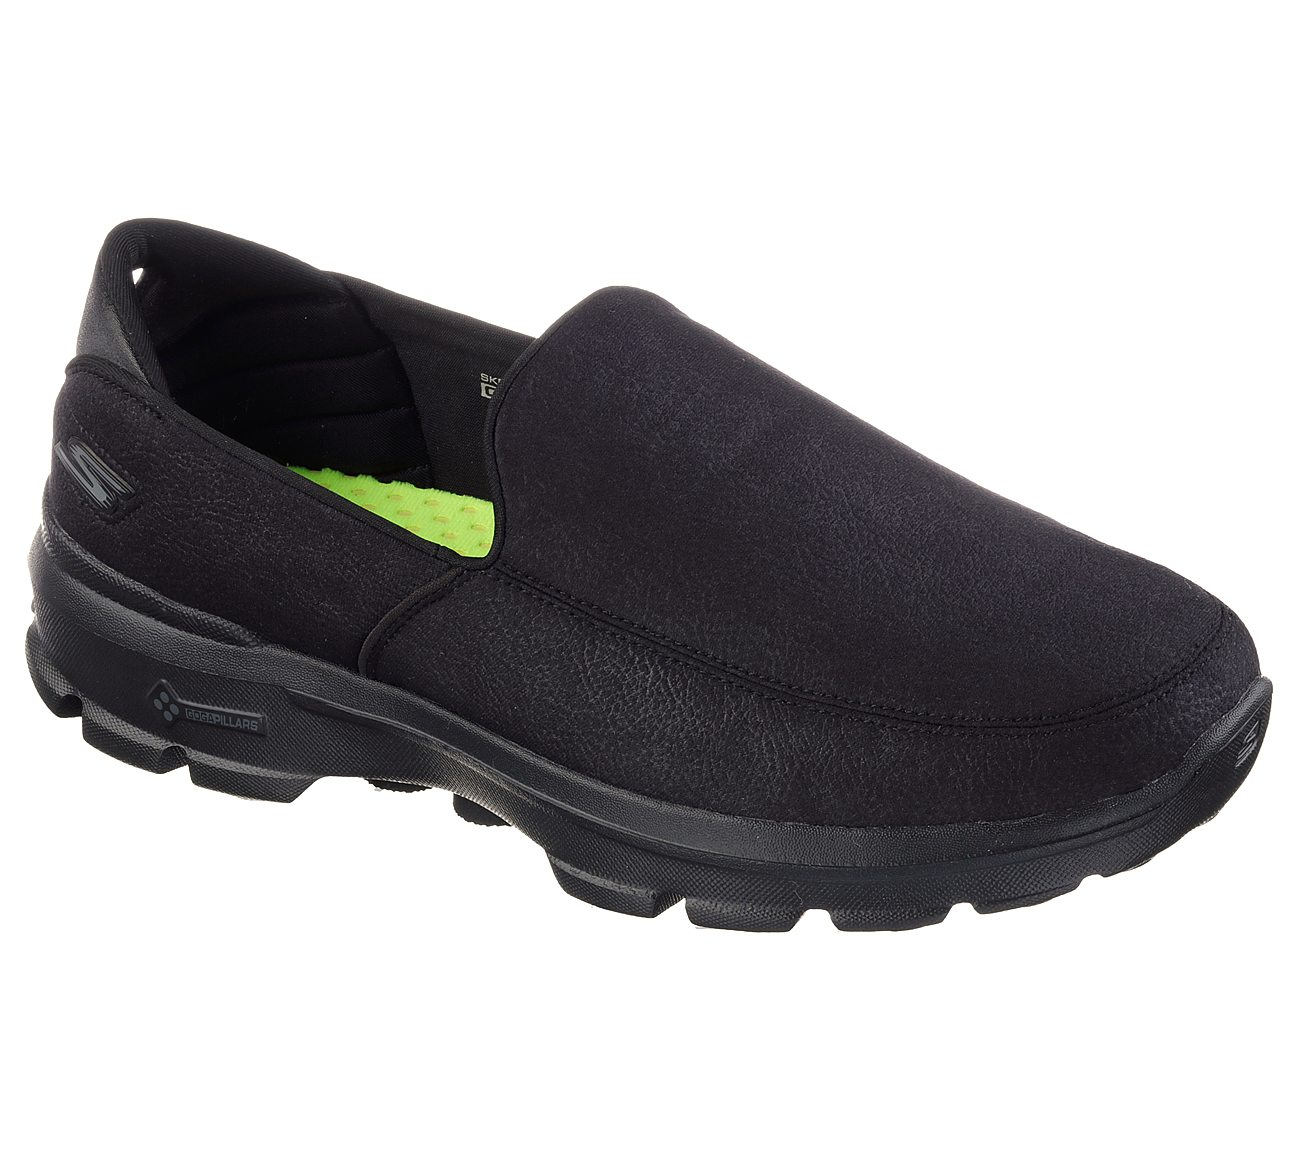 b06b56df58fe Buy SKECHERS Skechers GOwalk 3 LT Skechers Performance Shoes only  75.00